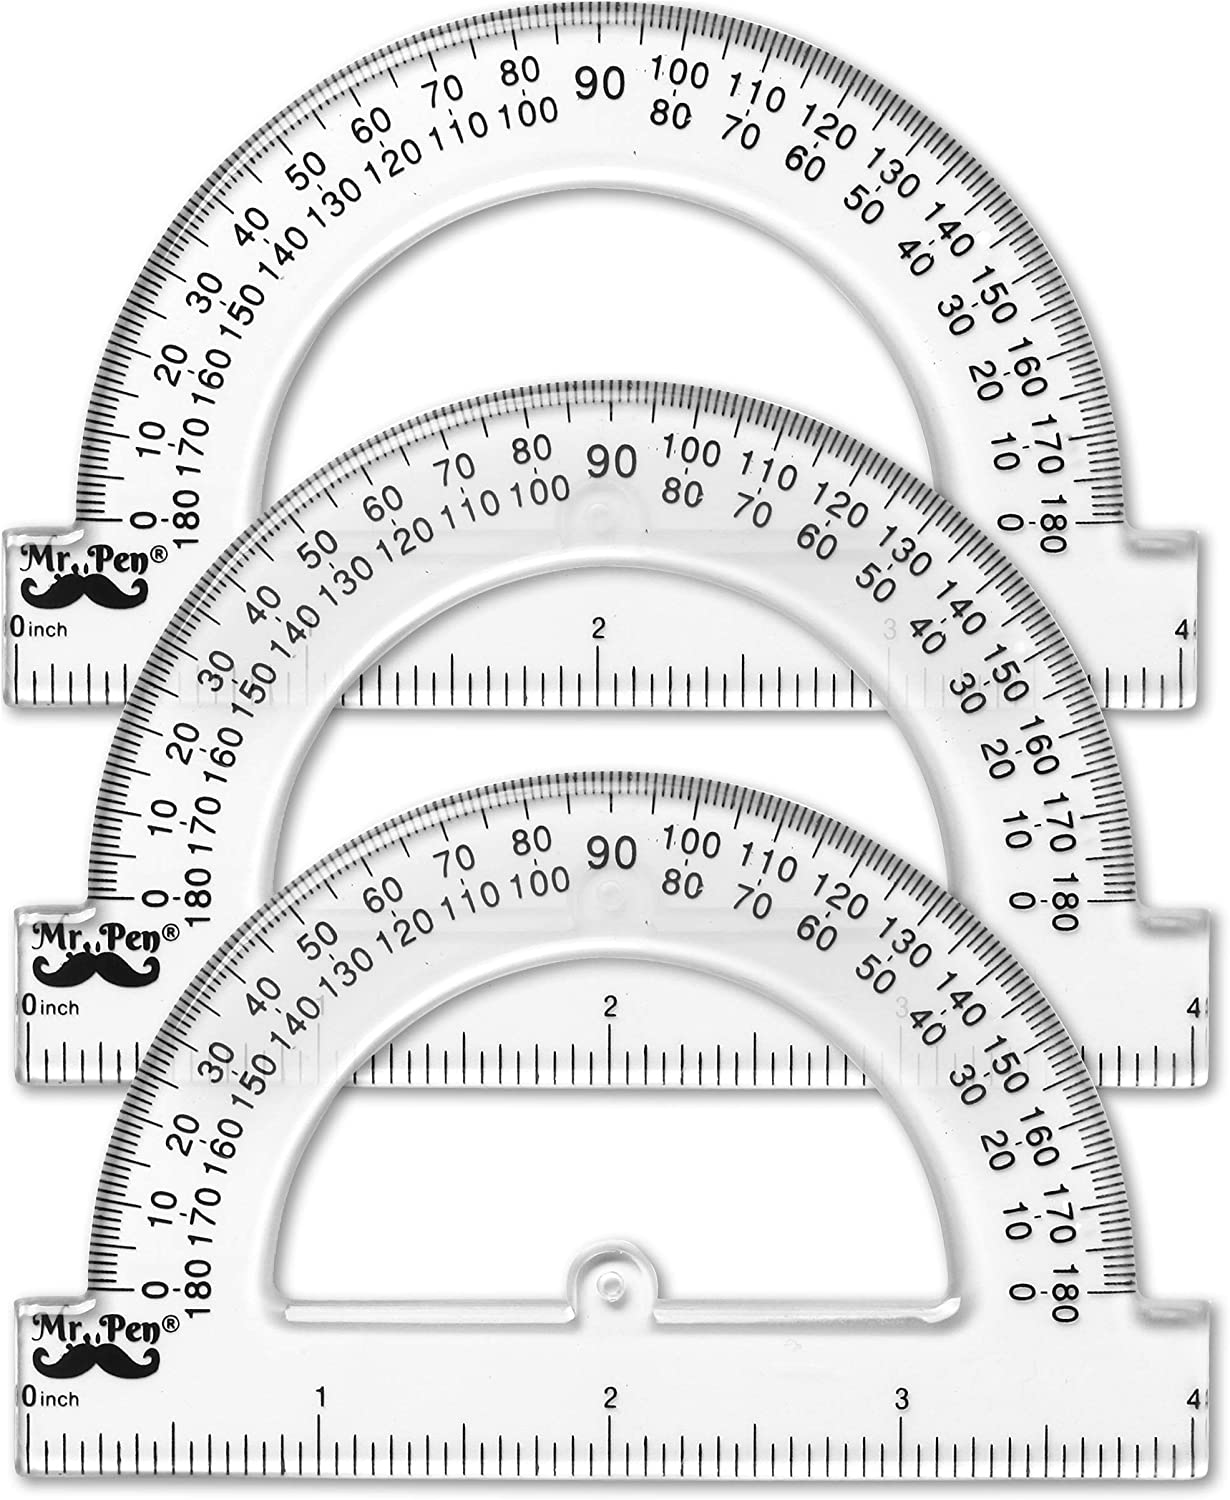 Mr. Pen- Small Protractor, 4 Inch Protractor, Pack of 3, Protractor Ruler, Drafting Tools, Protractor for Kids, Protractors Classroom Set, Protractor, Protactor 4 Inch, Math Geometry, School Supplies : Office Products